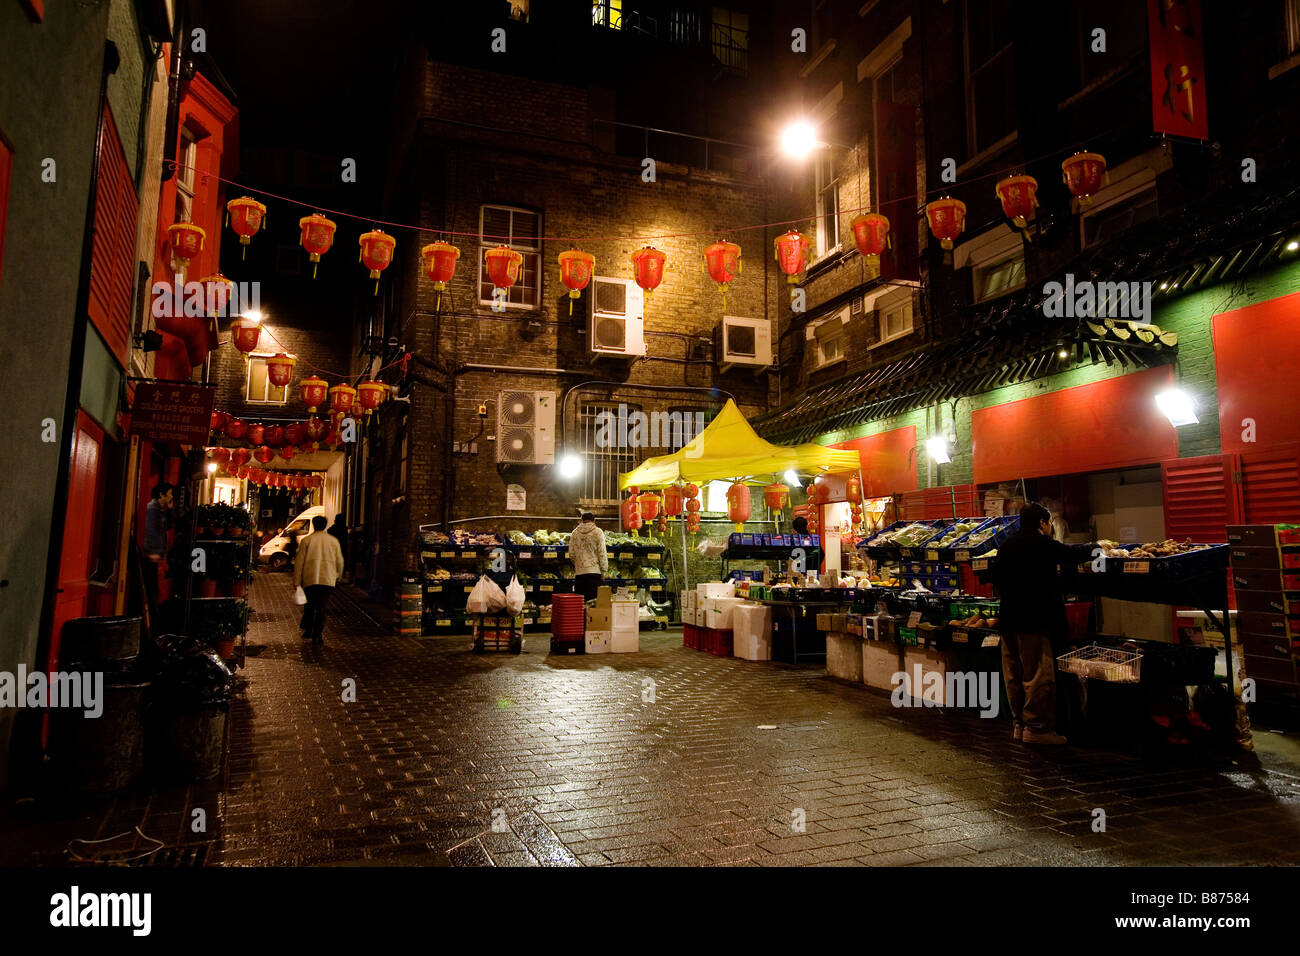 China Town in London. - Stock Image